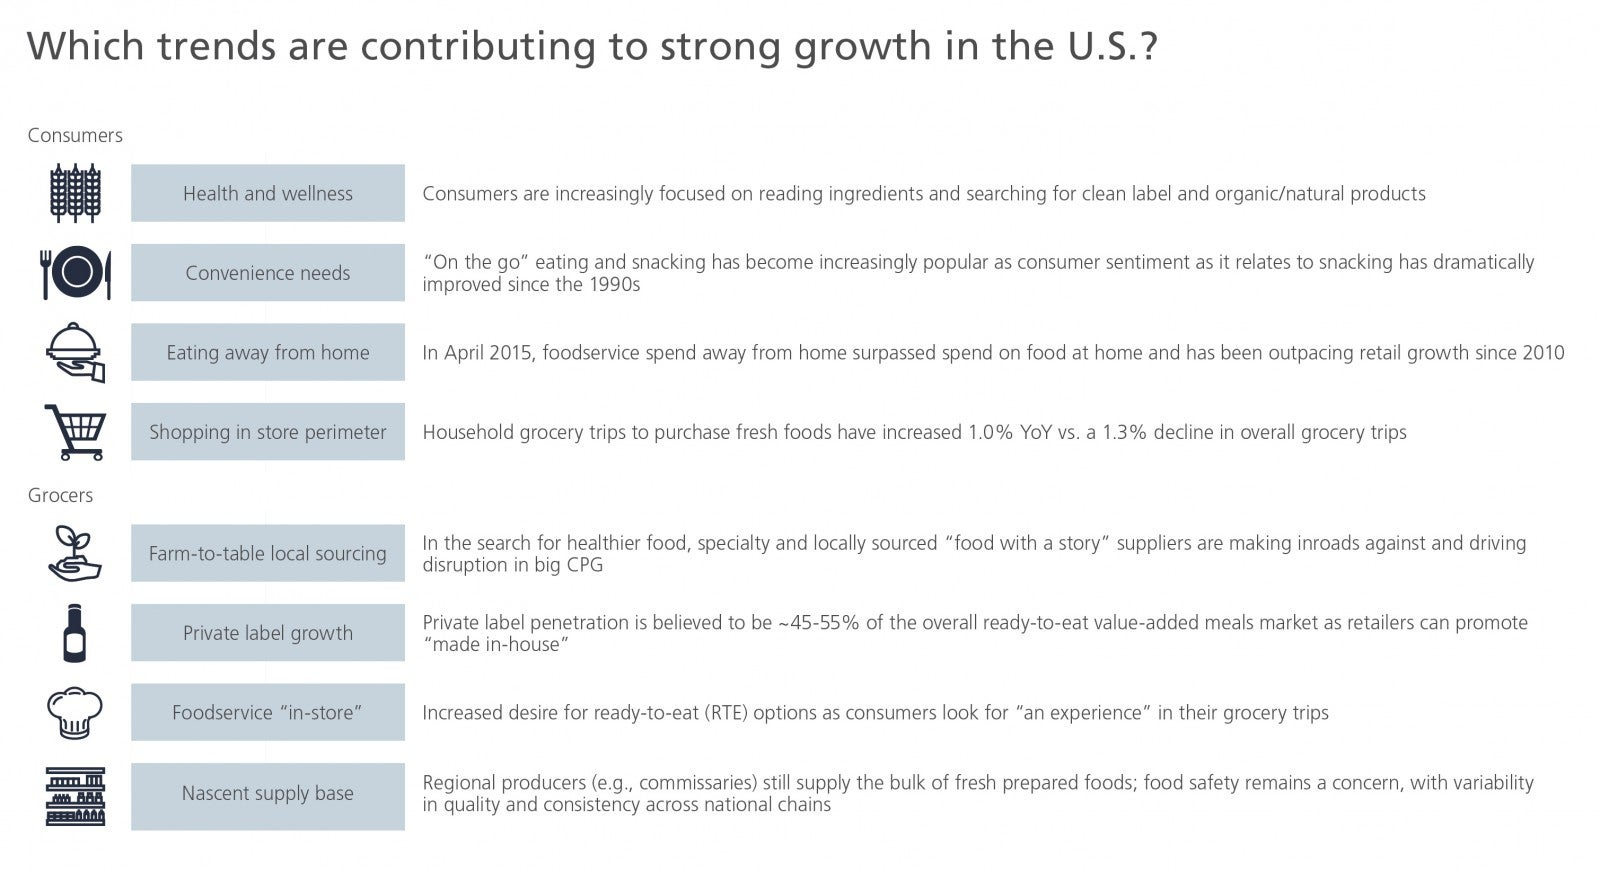 Which trends are contributing to strong growth in the U.S.